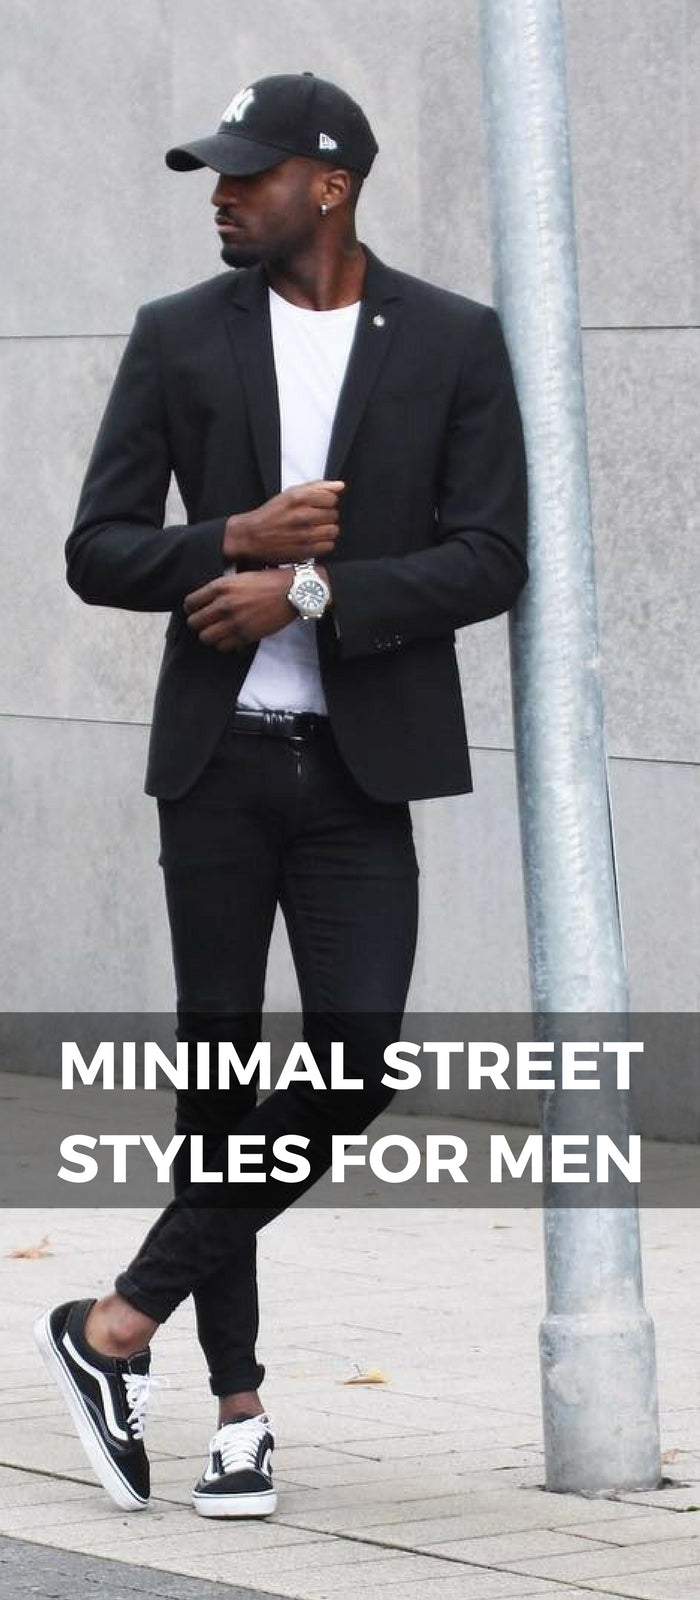 Minimal street style looks for men